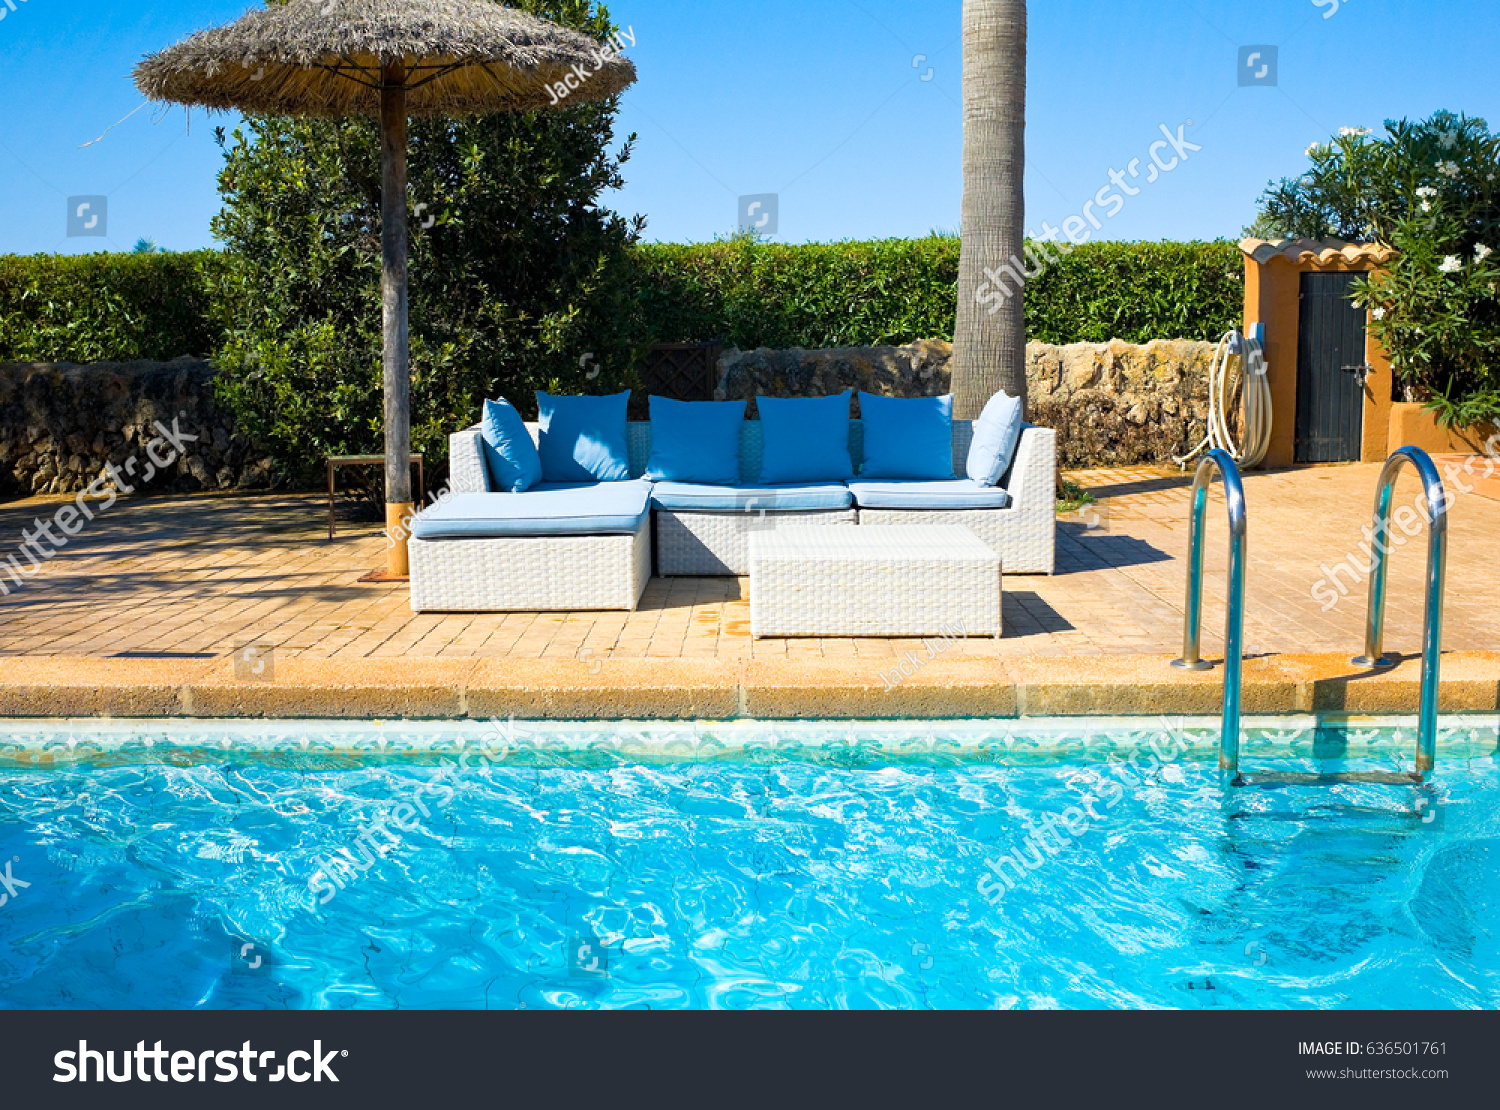 Outdoor Natural Gas Fire Pit Table, Lounge Chairs Near Pool Side Stock Photo Edit Now 636501761